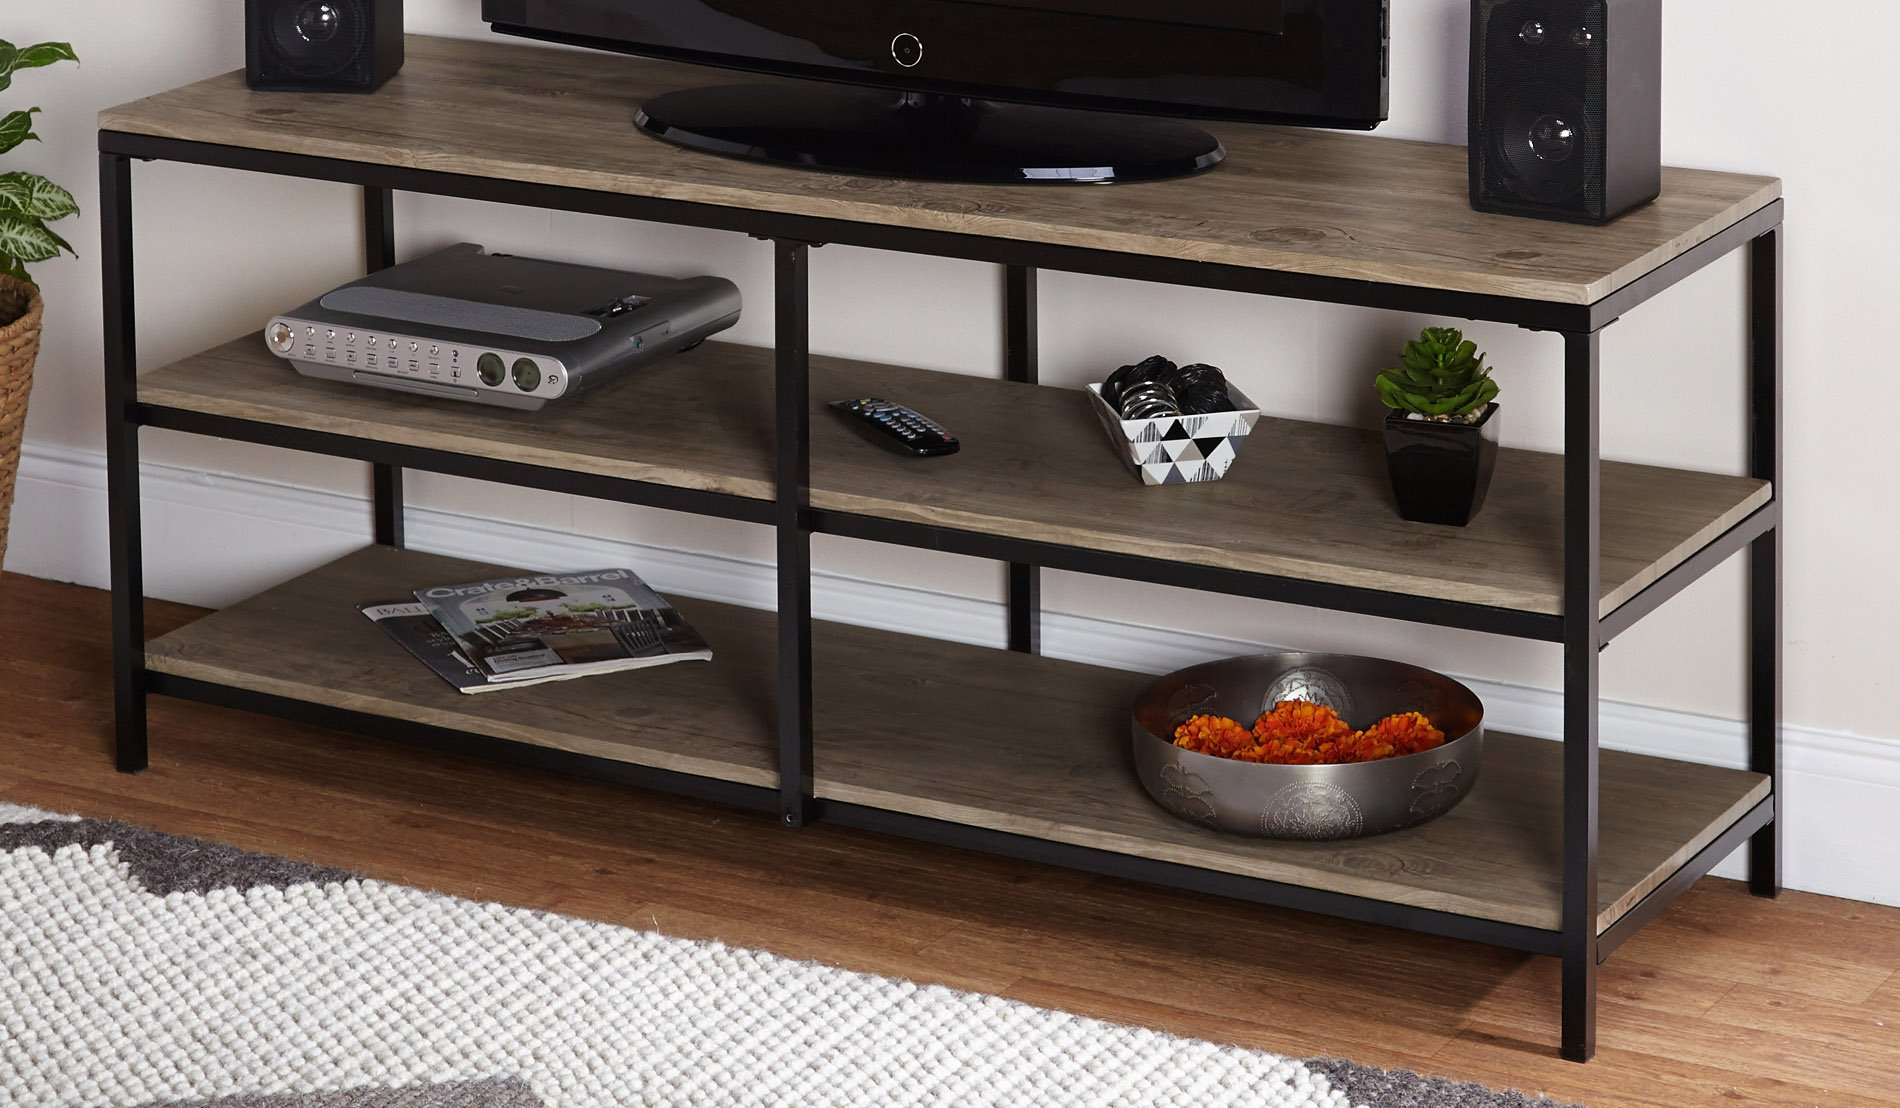 Target Marketing Systems Piazza Collection Modern Reclaimed Wooden TV Stand With Open Shelves, Wood/Metal by Target Marketing Systems